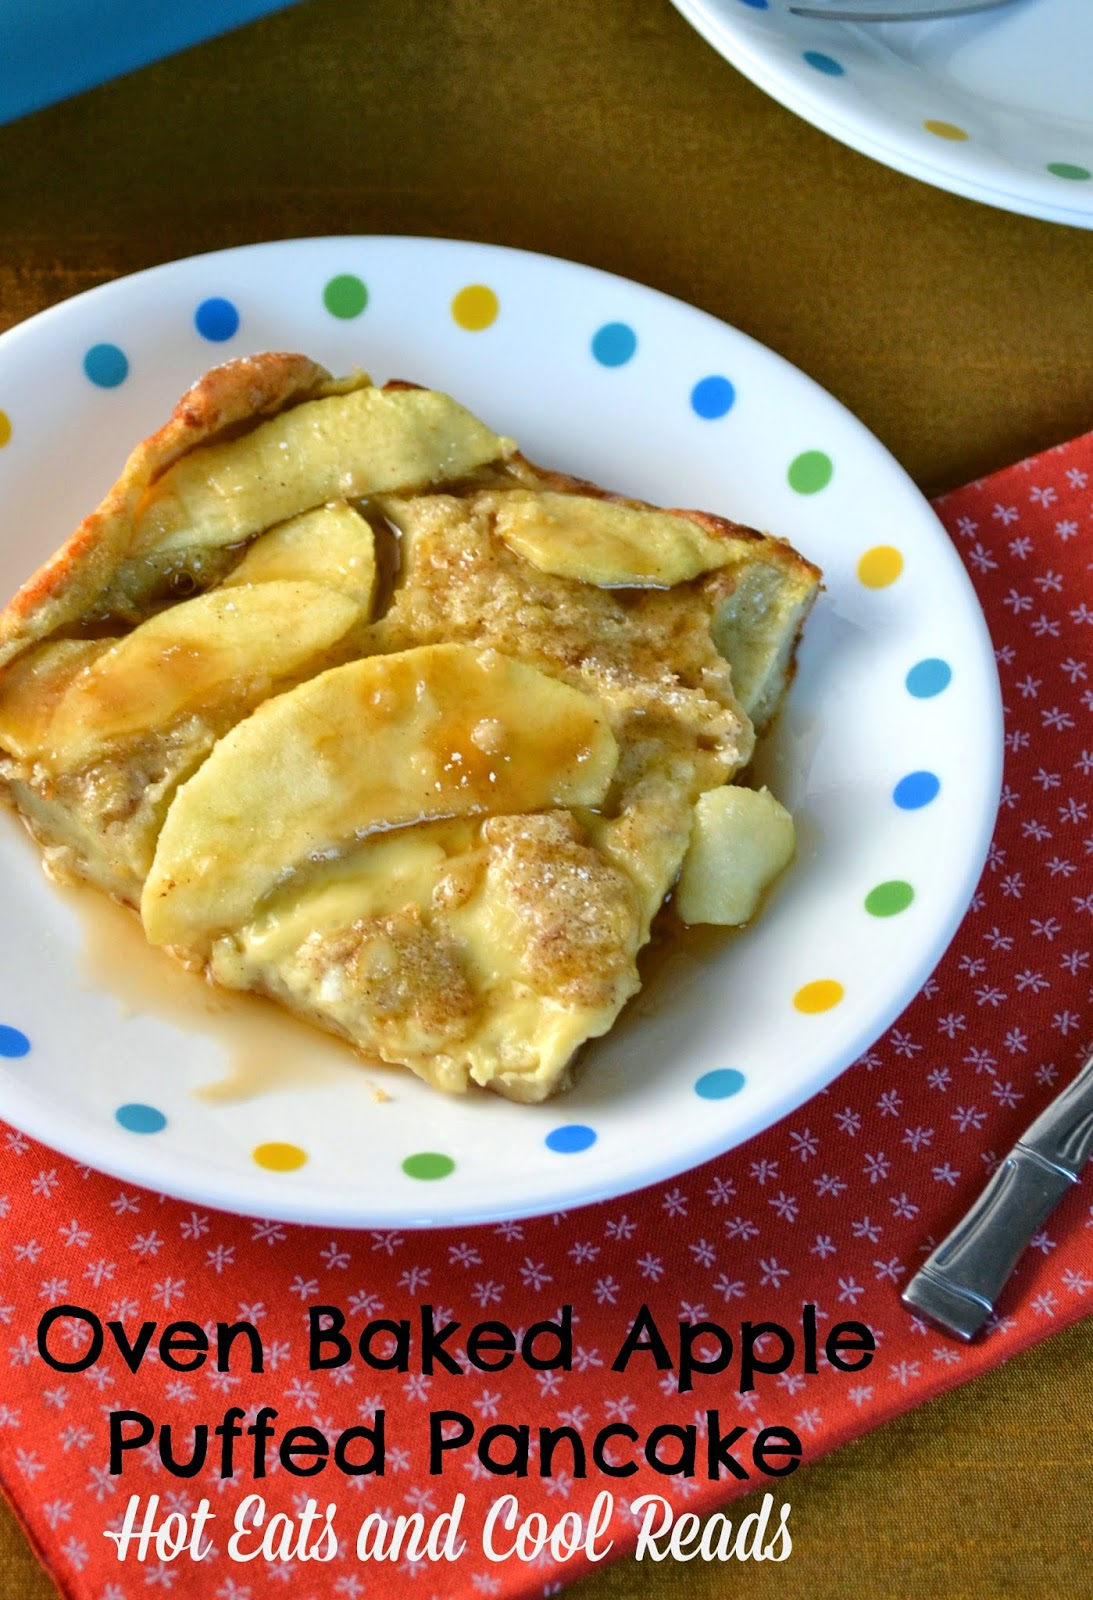 This sweet, oven baked breakfast is delicious served with sausage or bacon. Great for brunch or even dinner! Oven Baked Apple Puffed Pancake Recipe and a Review for My Tiny Alaskan Oven Cookbook